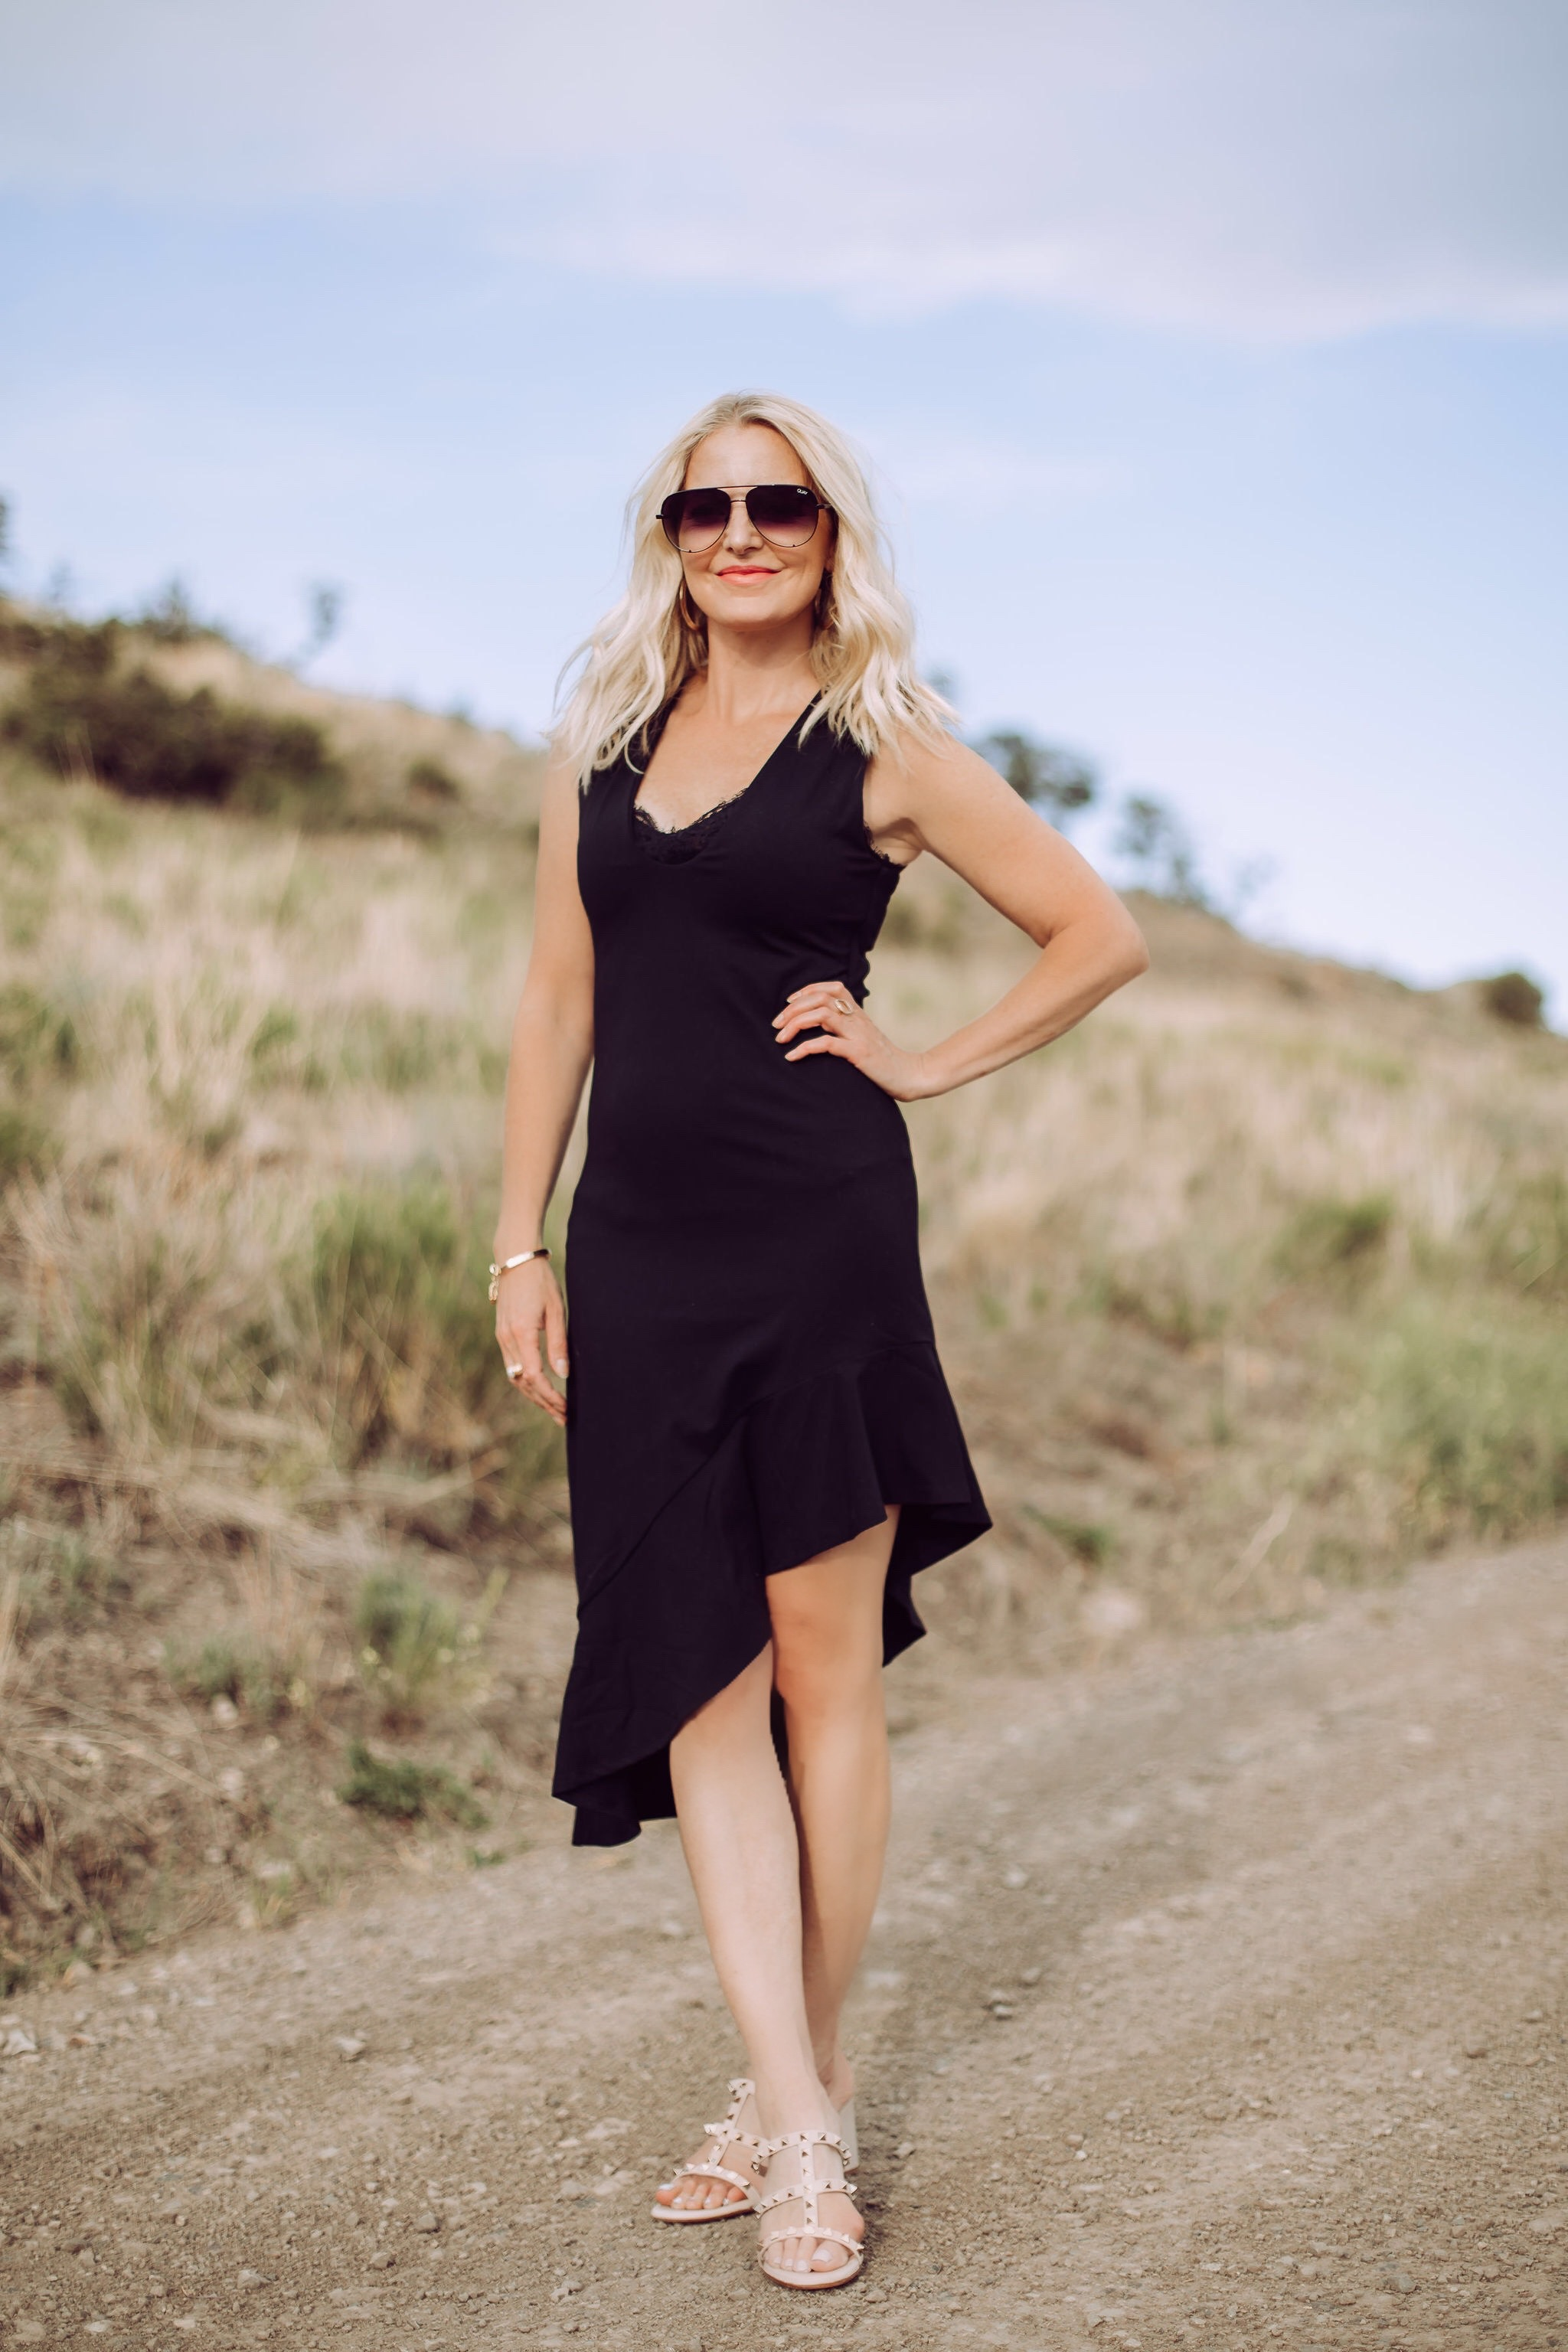 Date Night Outfit Over 40, Fahsion blogger Erin Busbee of Busbee Style wearing a black asymmetrical Susana Monaco dress with lace cami, Valentino Sandals, and QUAY aviator sunglasses in Telluride, Colorado